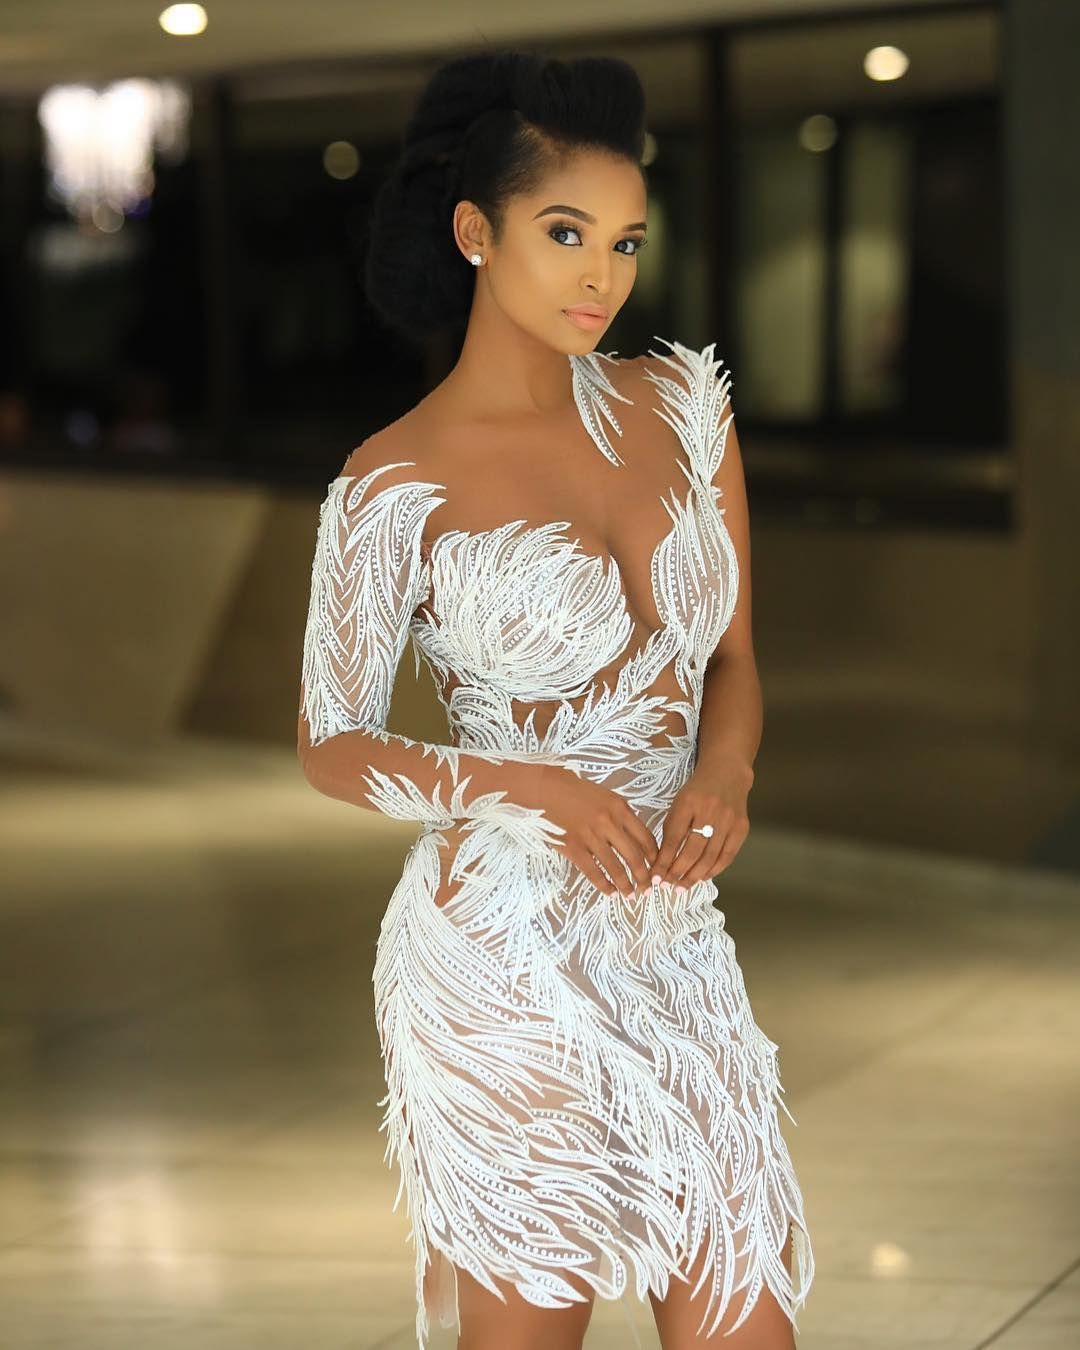 Stunning Which Wedding Event Are You Wearing This To Wedding Bridal Shower Reception Dres Bride Reception Dresses Reception Dress Reception Dress Short